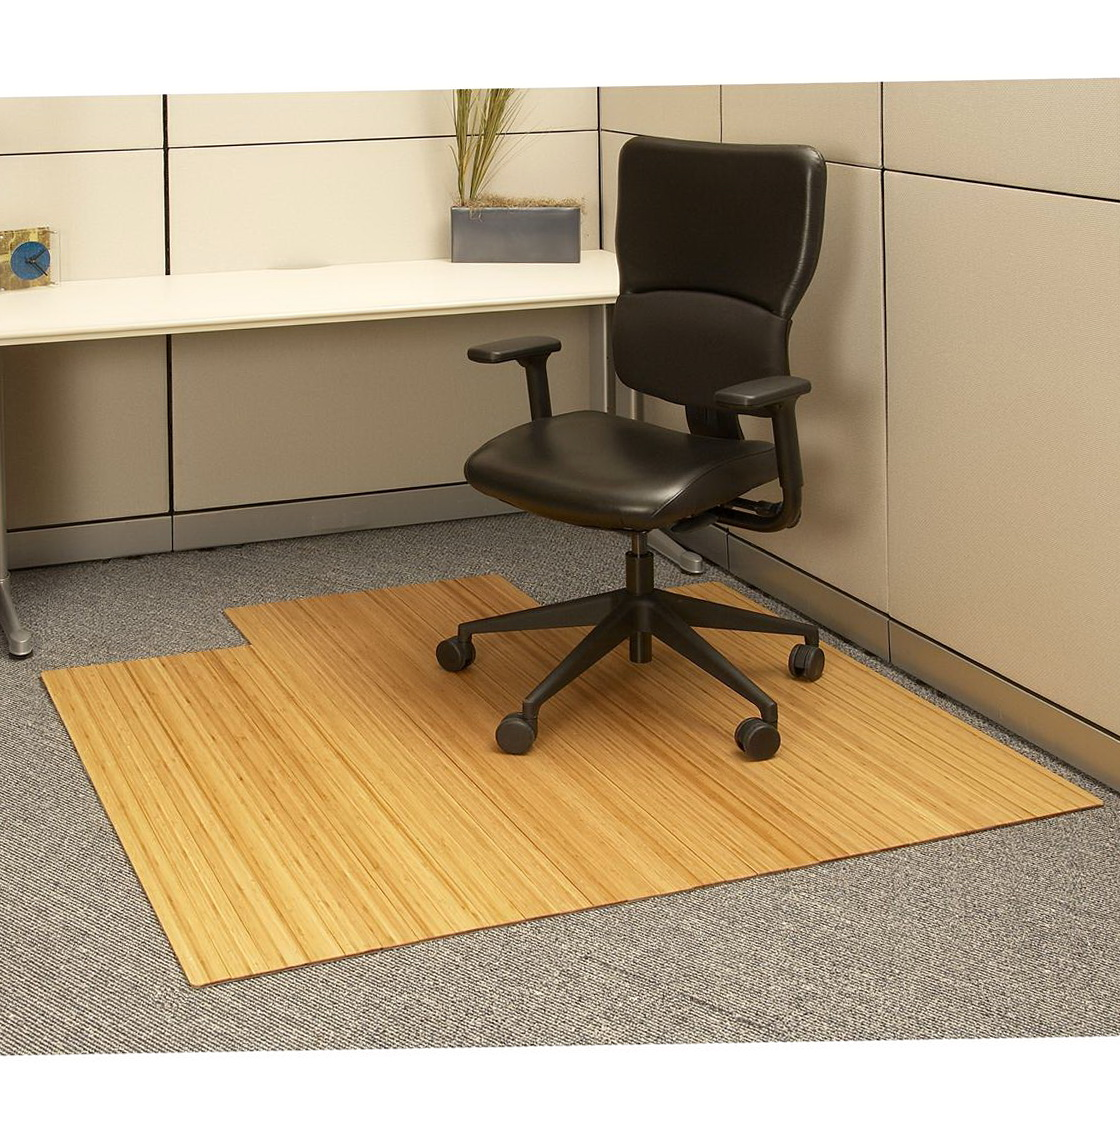 Bamboo Office Chair Mat